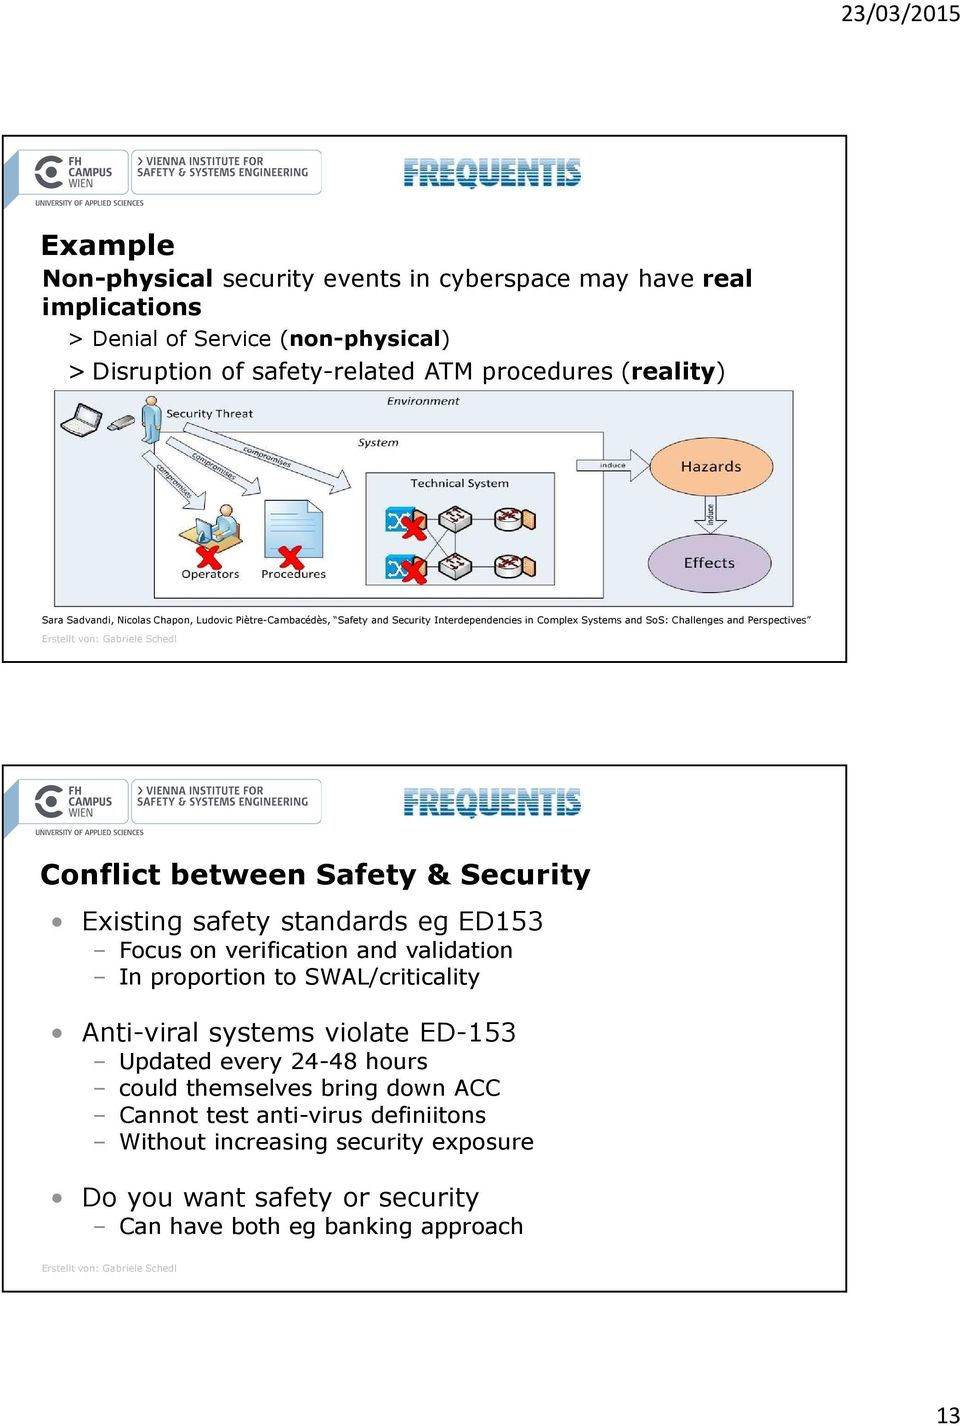 Security Existing safety standards eg ED153 Focus on verification and validation In proportion to SWAL/criticality Anti-viral systems violate ED-153 Updated every 24-48